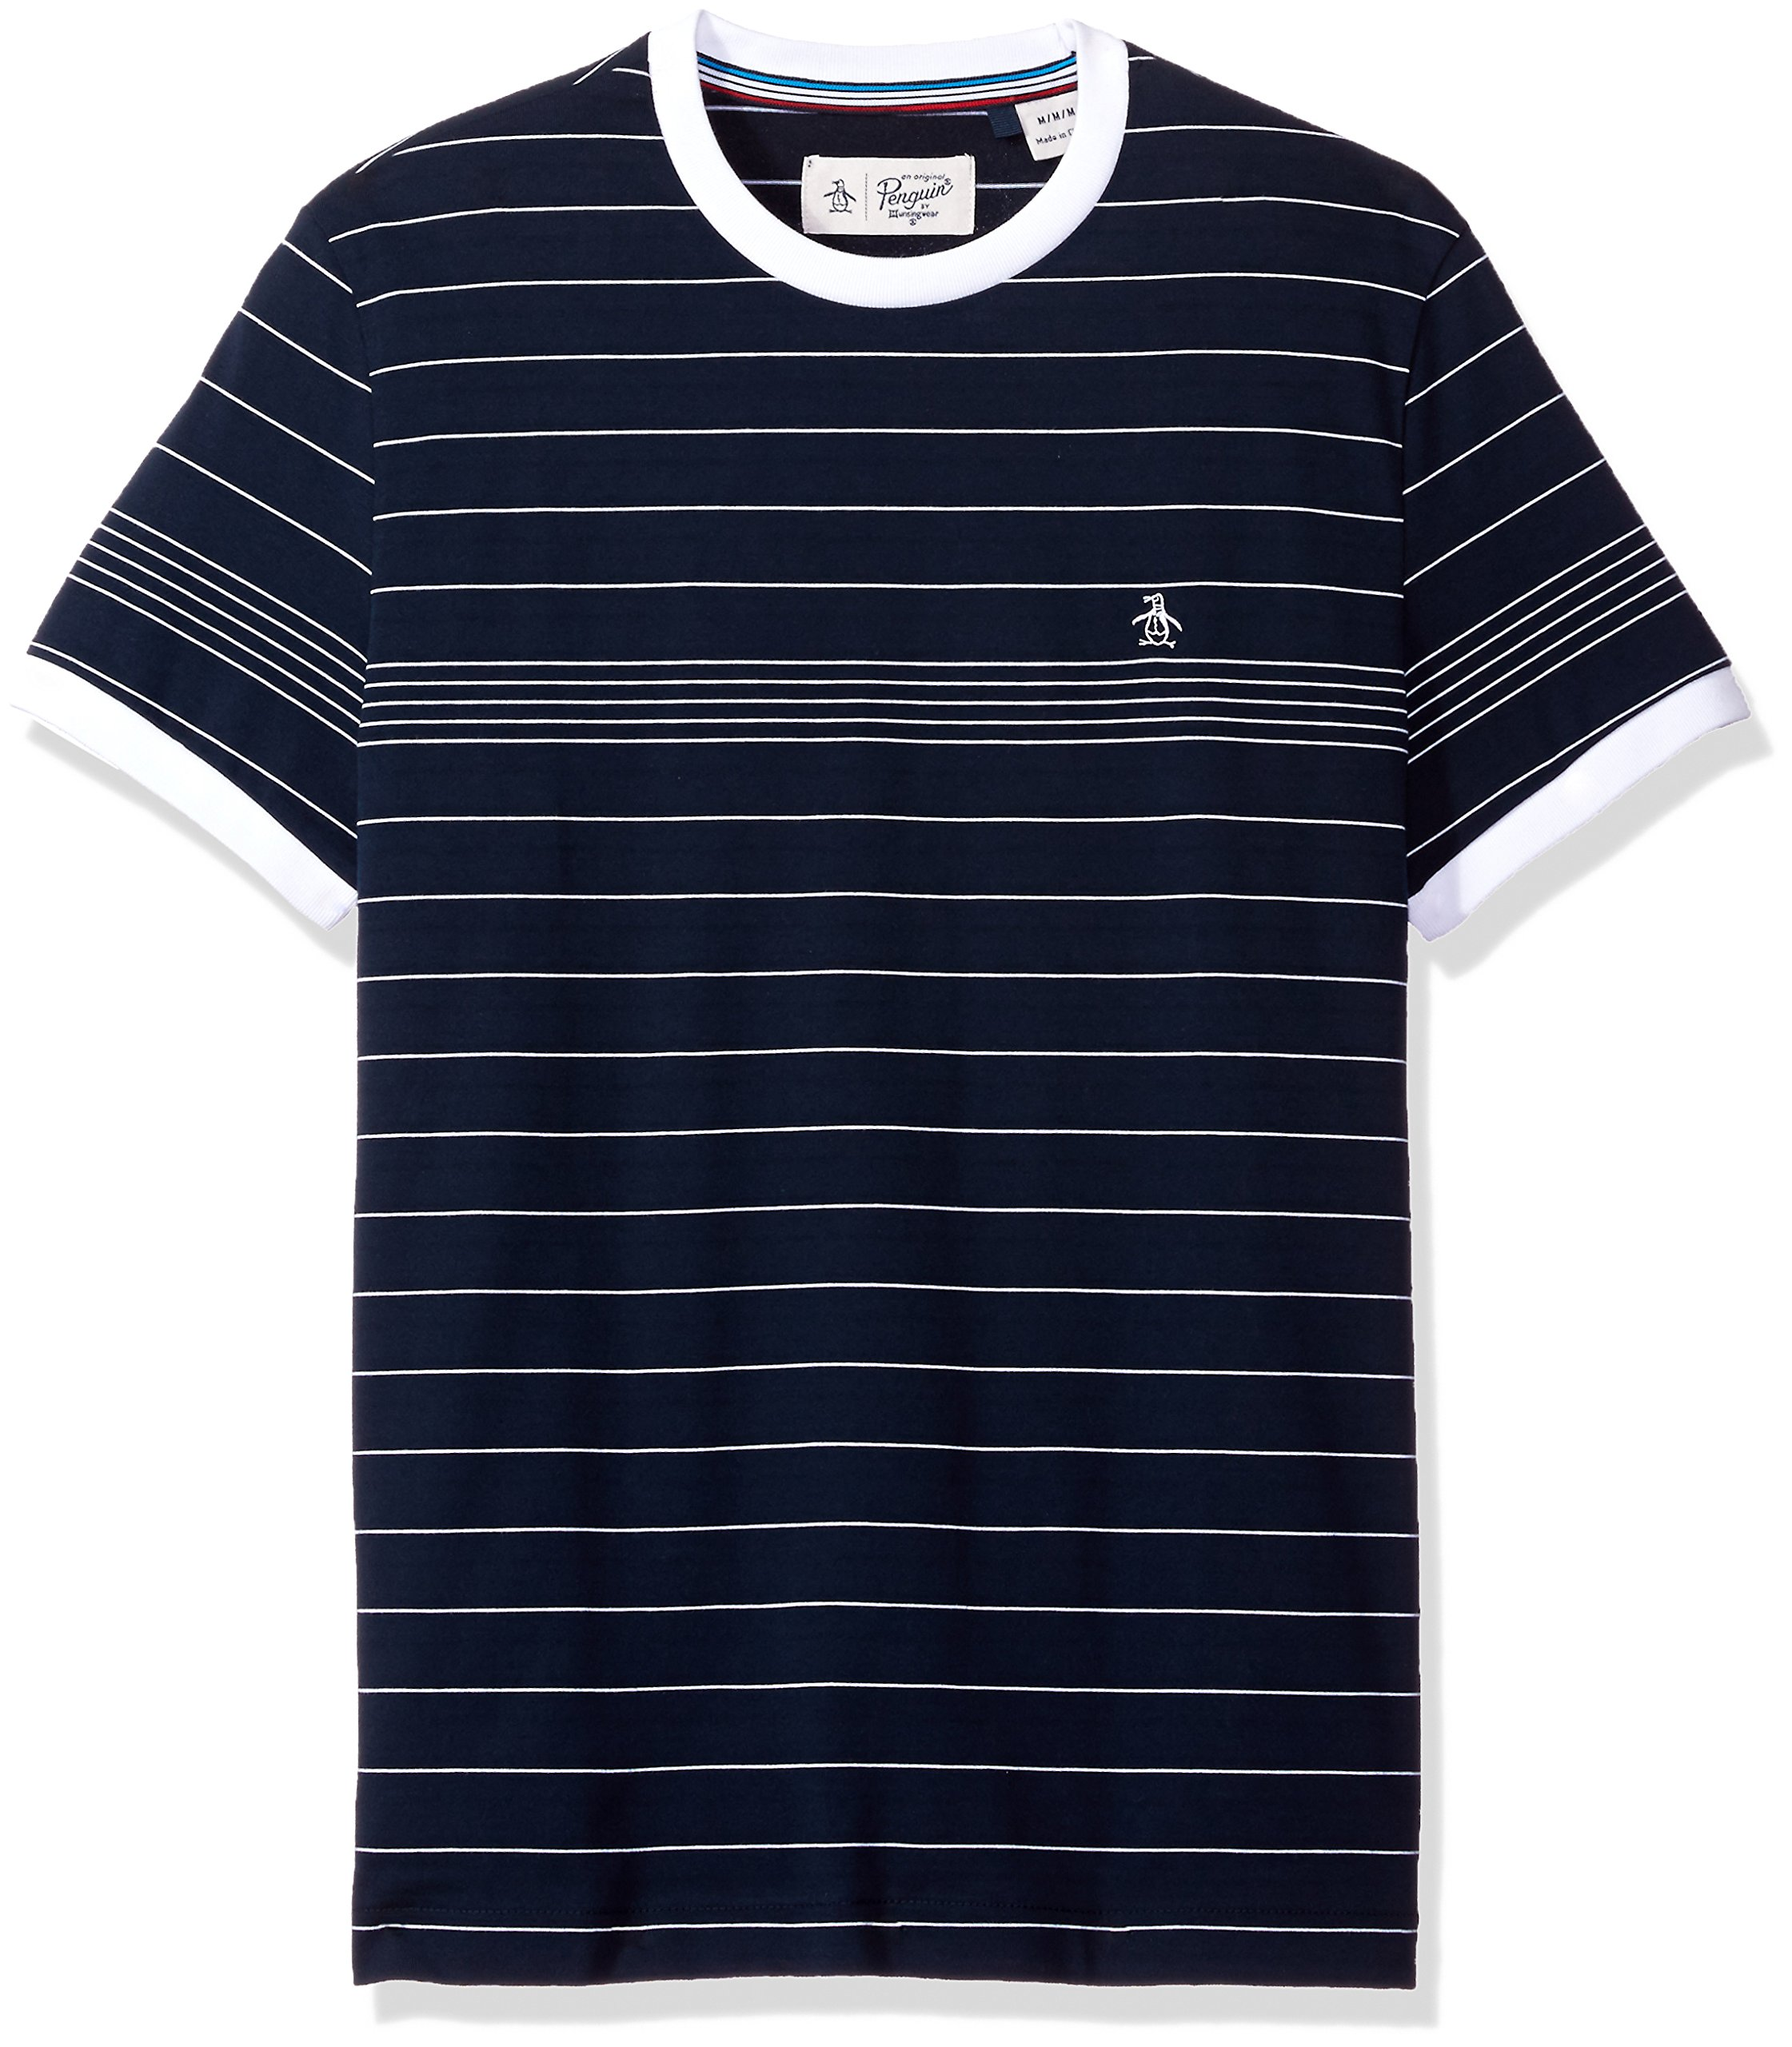 Original Penguin Men's Short Sleeve Slim Fit Engineered Fine Stripe Tee, Dark Sapphire, Medium